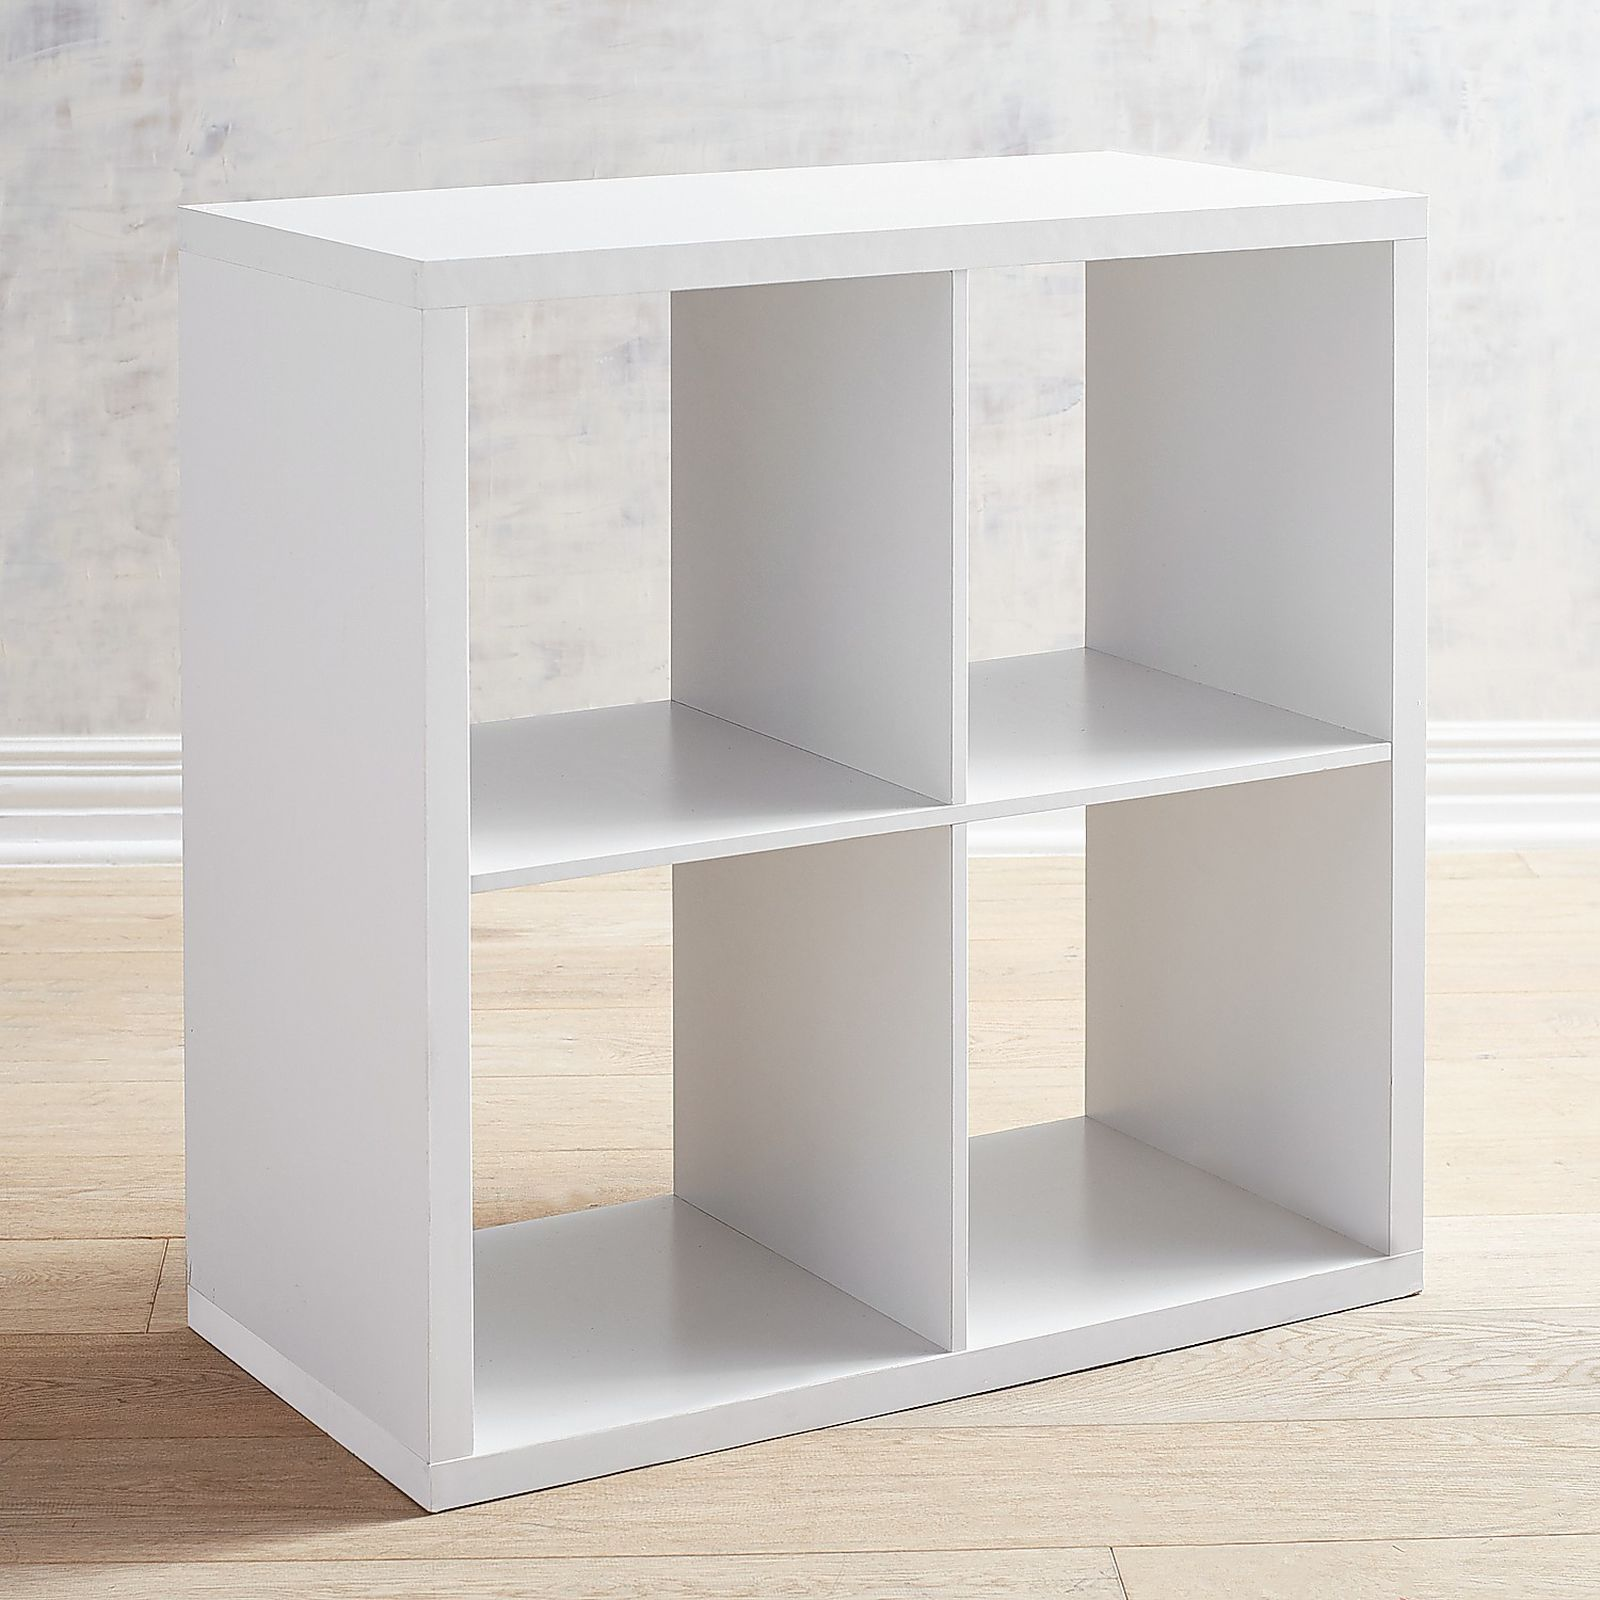 Do You Need Some Extra Shelf Space Well Here It Is Our Wooden Storage Unit Provides Four Enclosed Shelves Cube Storage Unit Cheap Storage Units Cube Storage